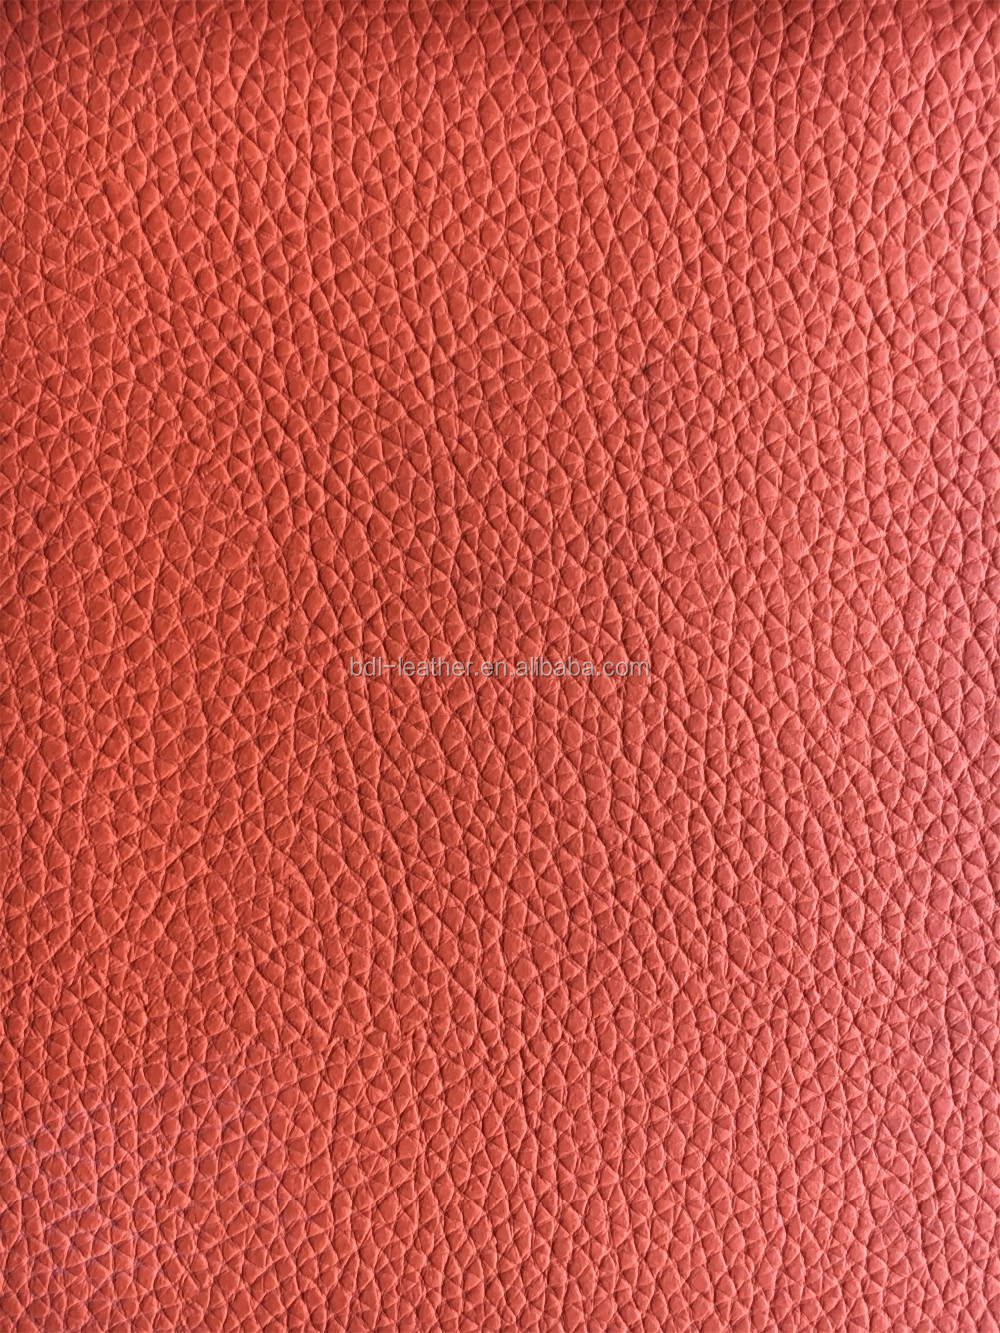 Imitation antique Fake PVC Leather for furniture & embossed leather, for sofa, chair